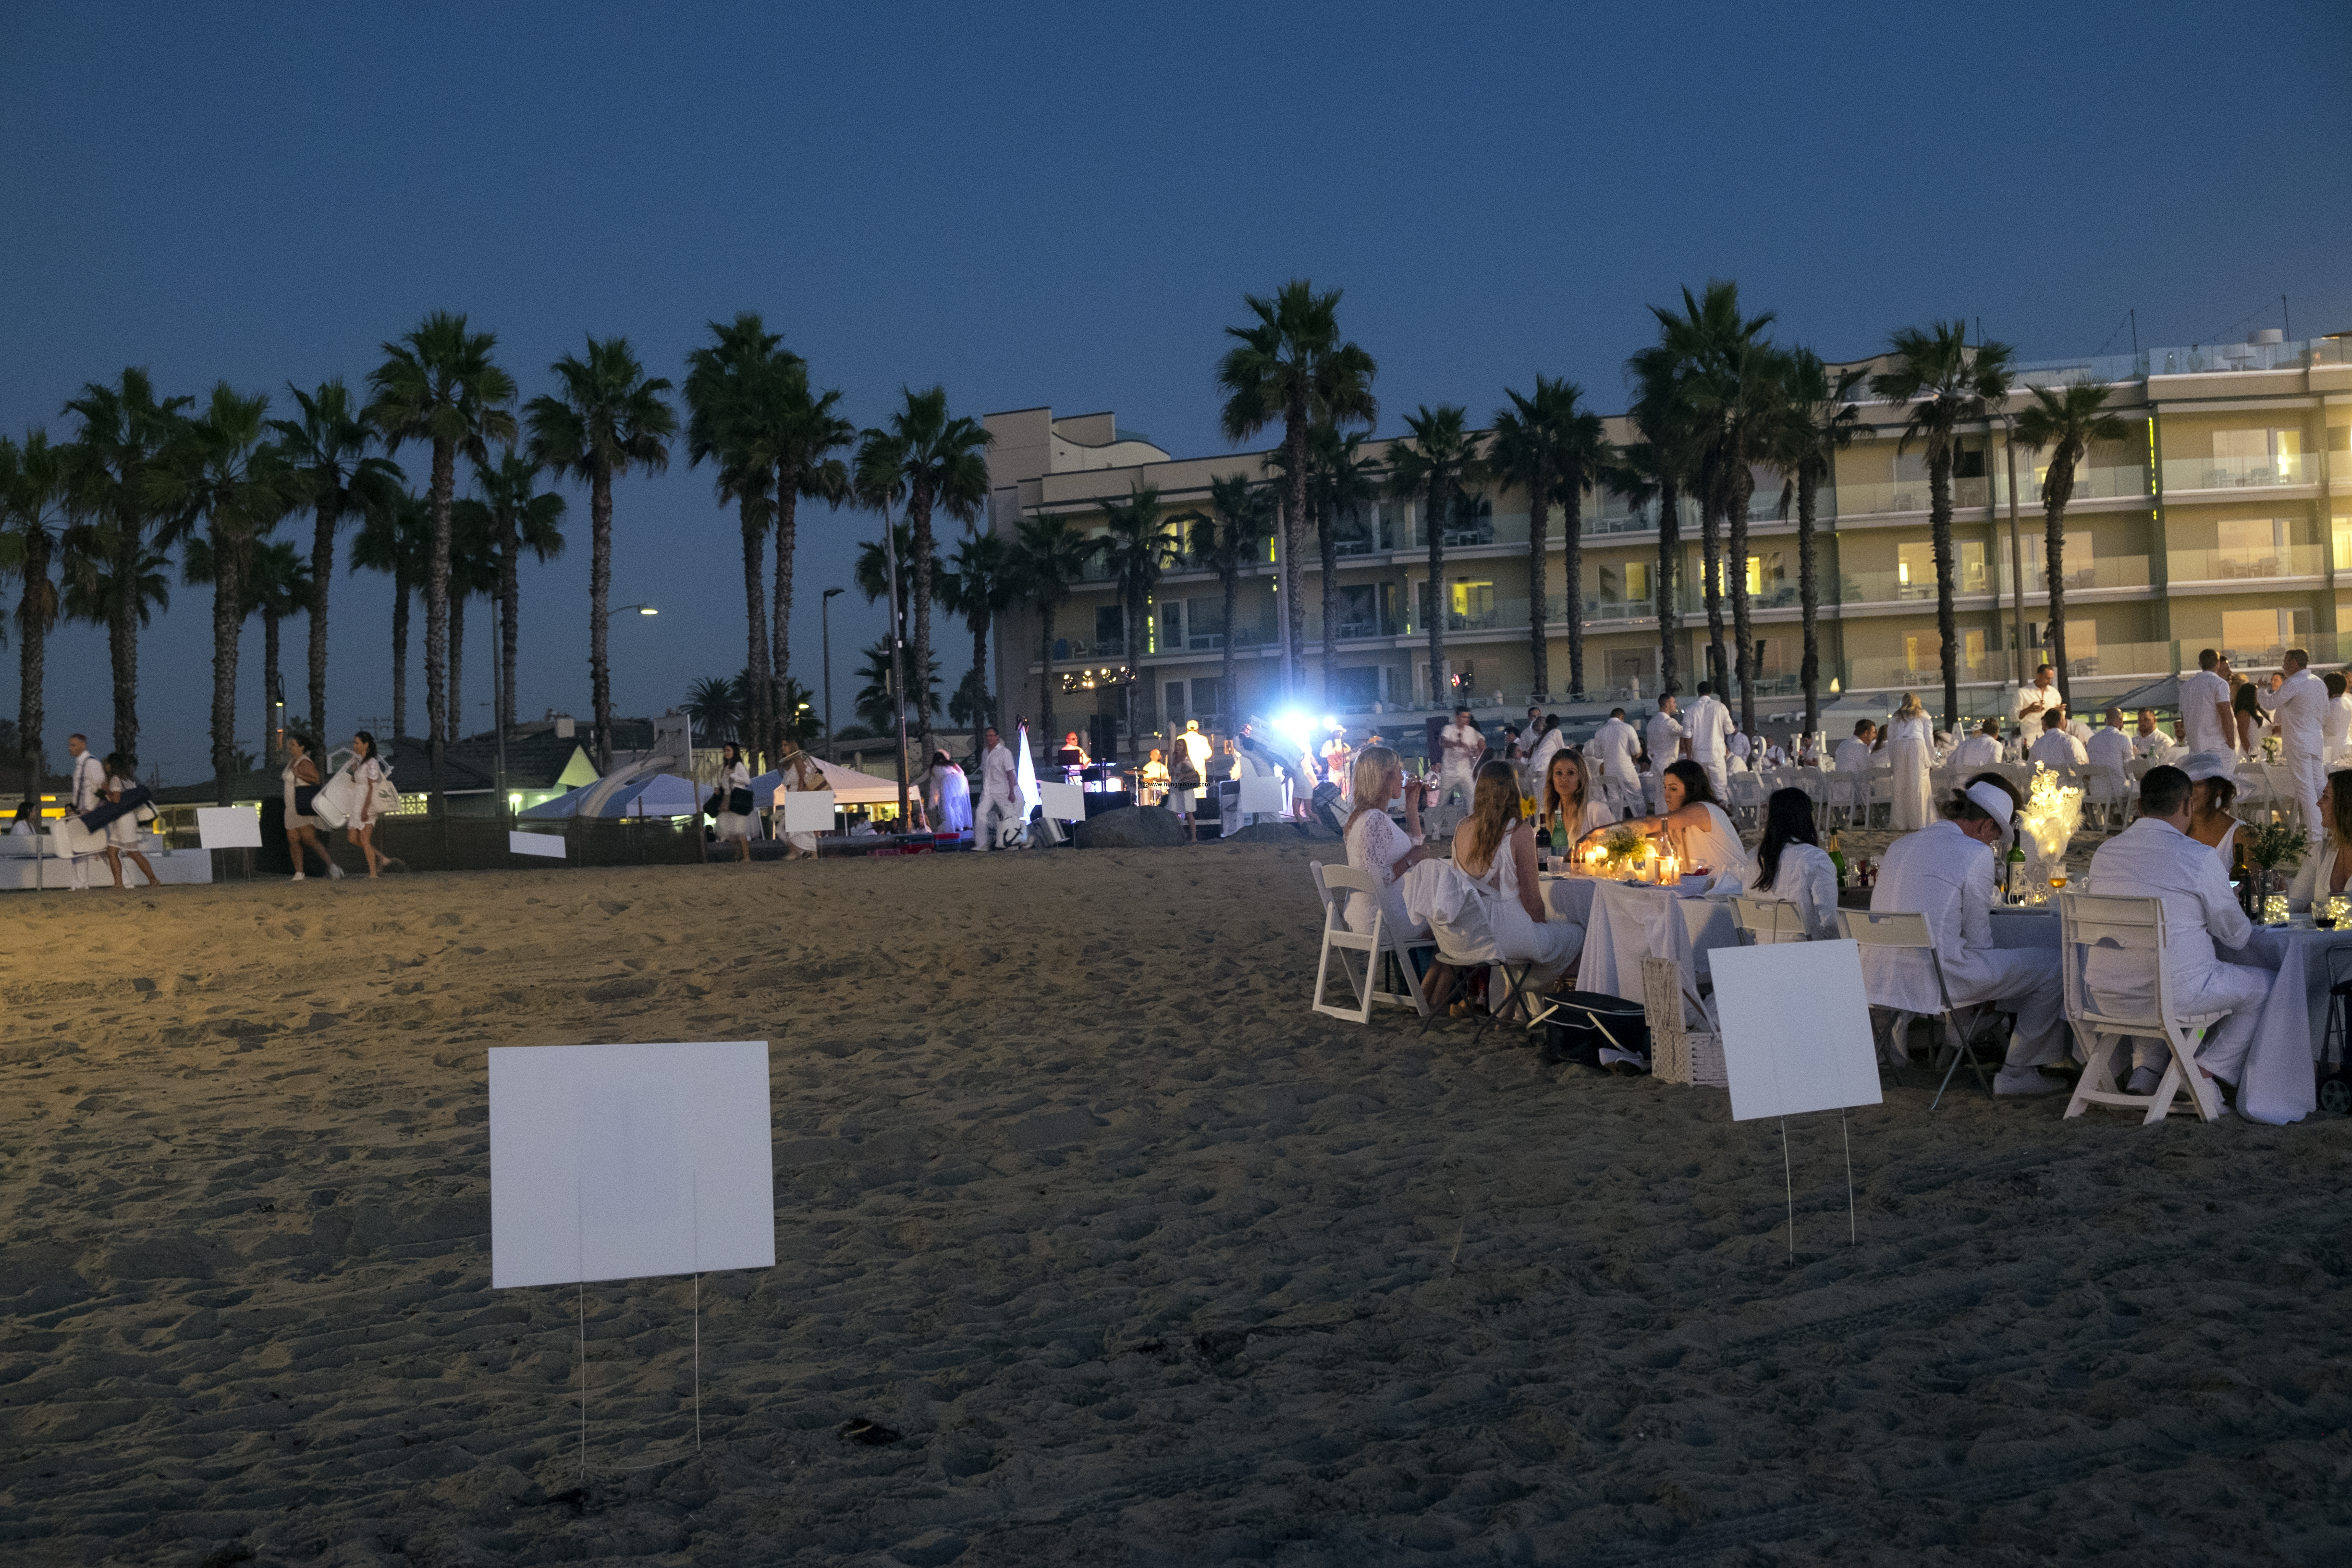 le-diner-en-blanc-and-apothic-wine-all-white-beach-event-20163205